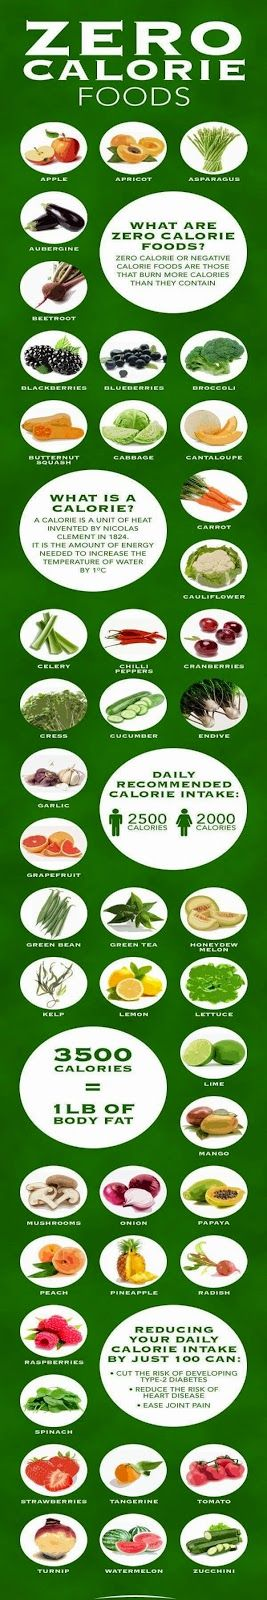 Zero Calorie Foods | Tricksly